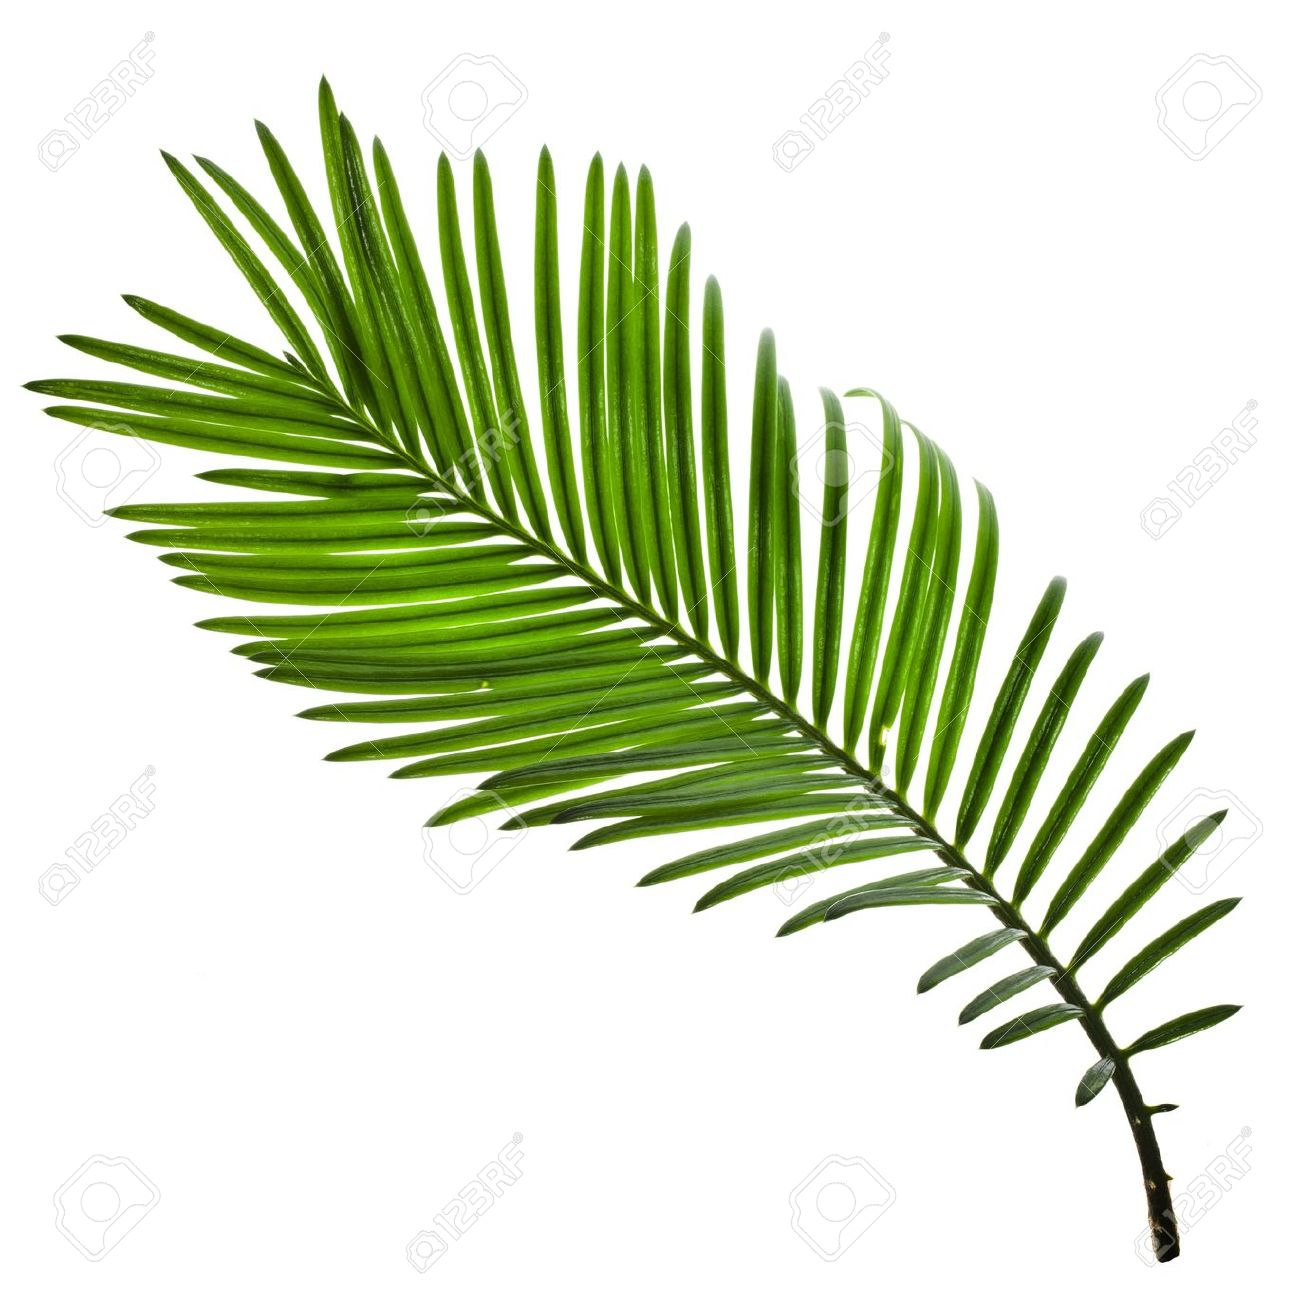 single green leaf of palm tree isolate on white background stock